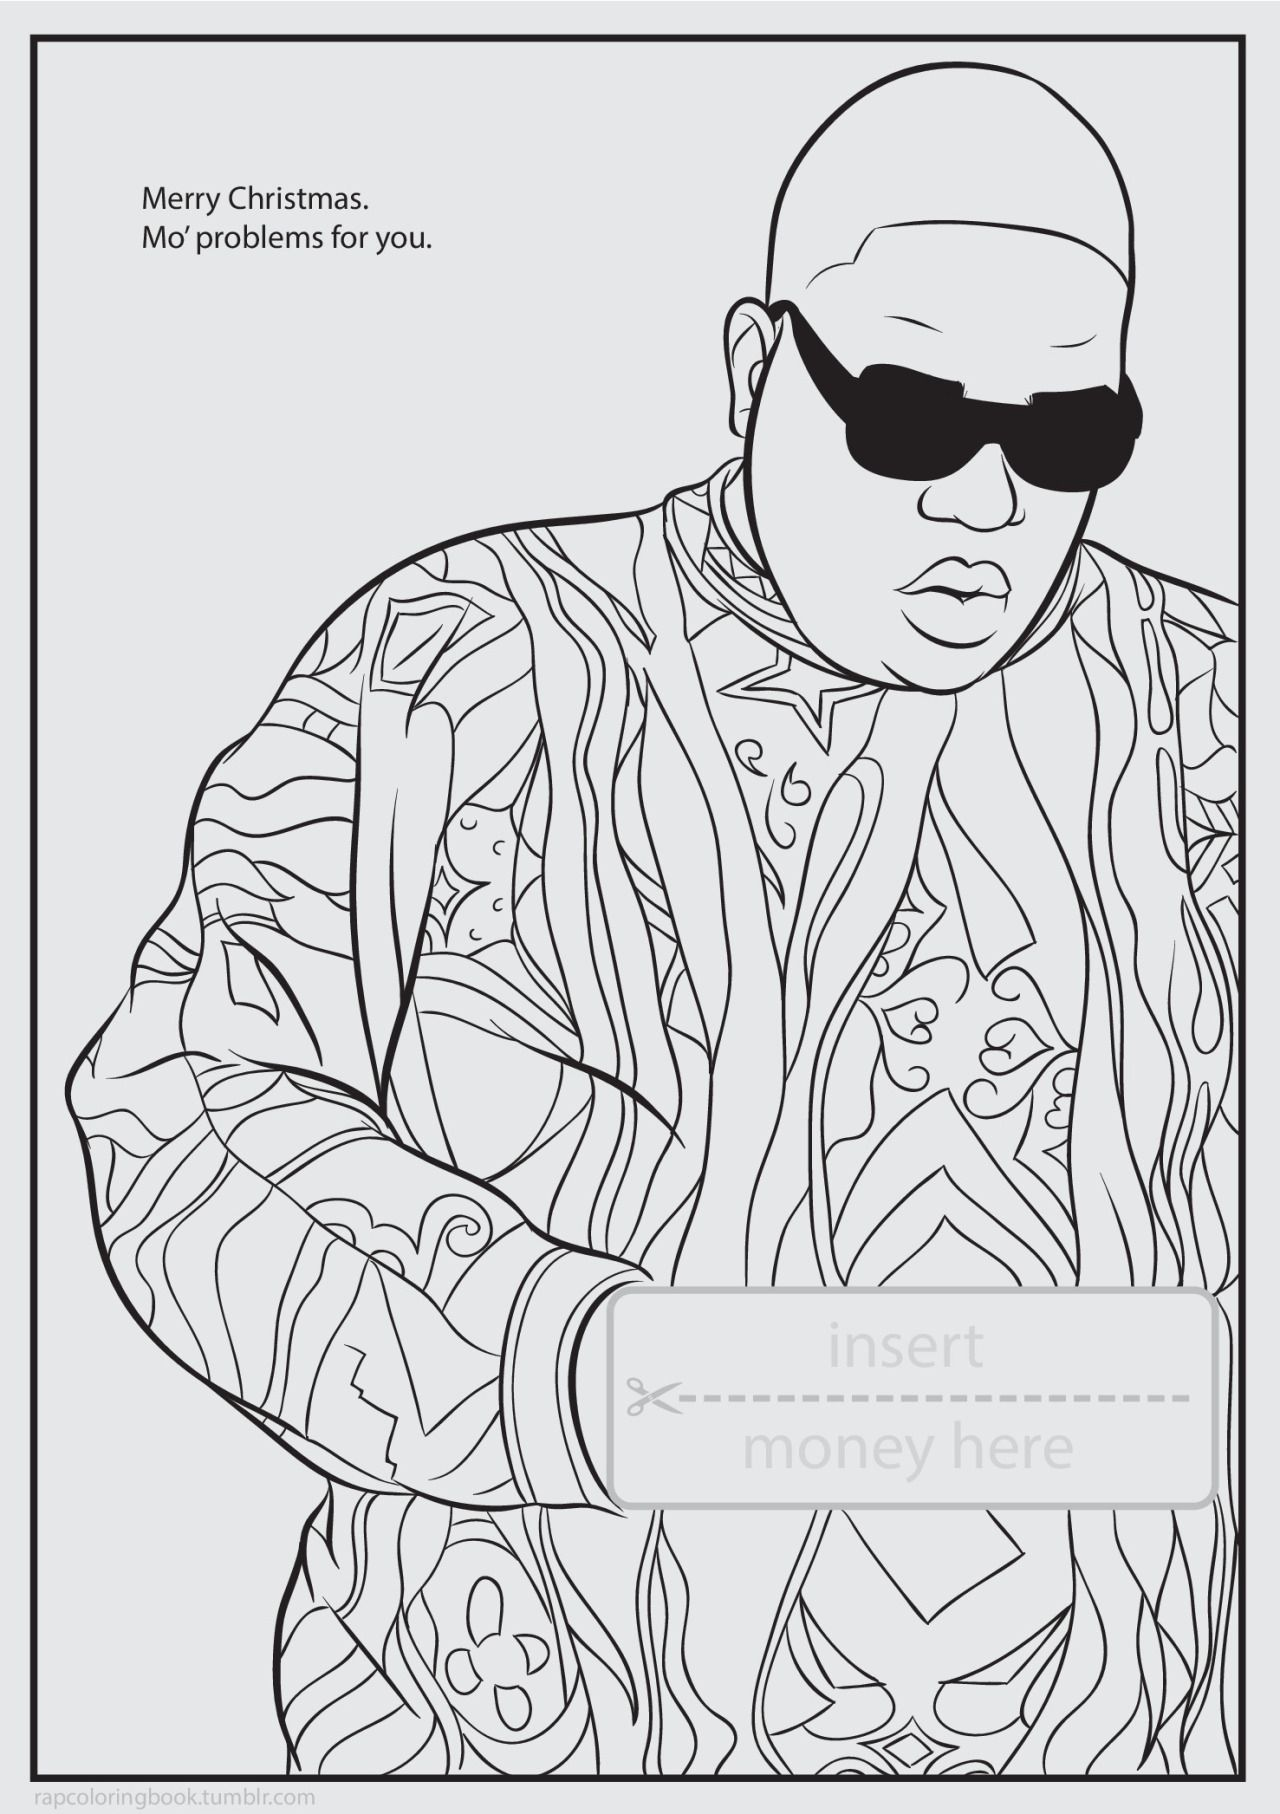 Rapper Tupac Coloring Pages - Coloring Pages Ideas